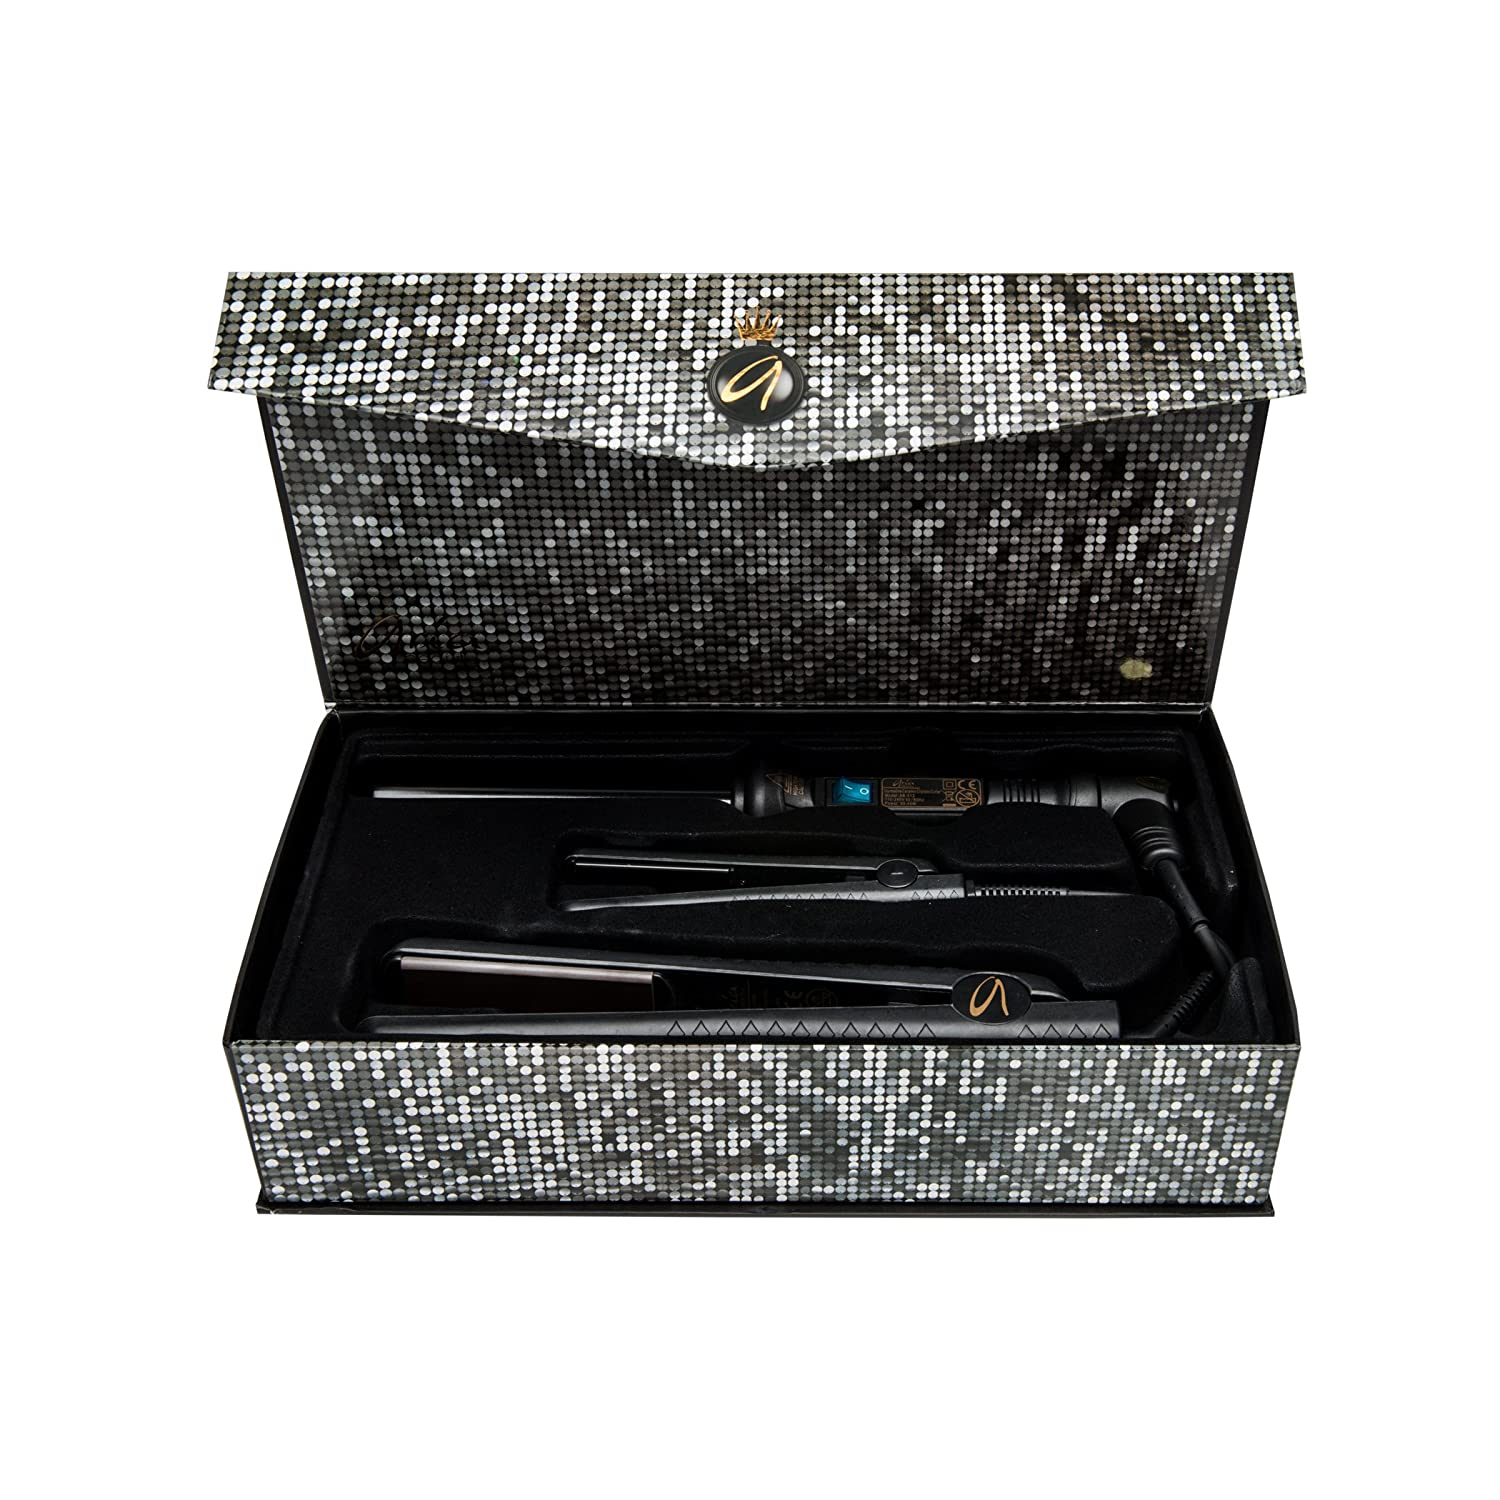 Aria Beauty - Allure Beauty Box Black - Juego comprensivo de mini placa de cerámica, placa de cerámica y rizador 19 mm color negro - garantía de vida: ...